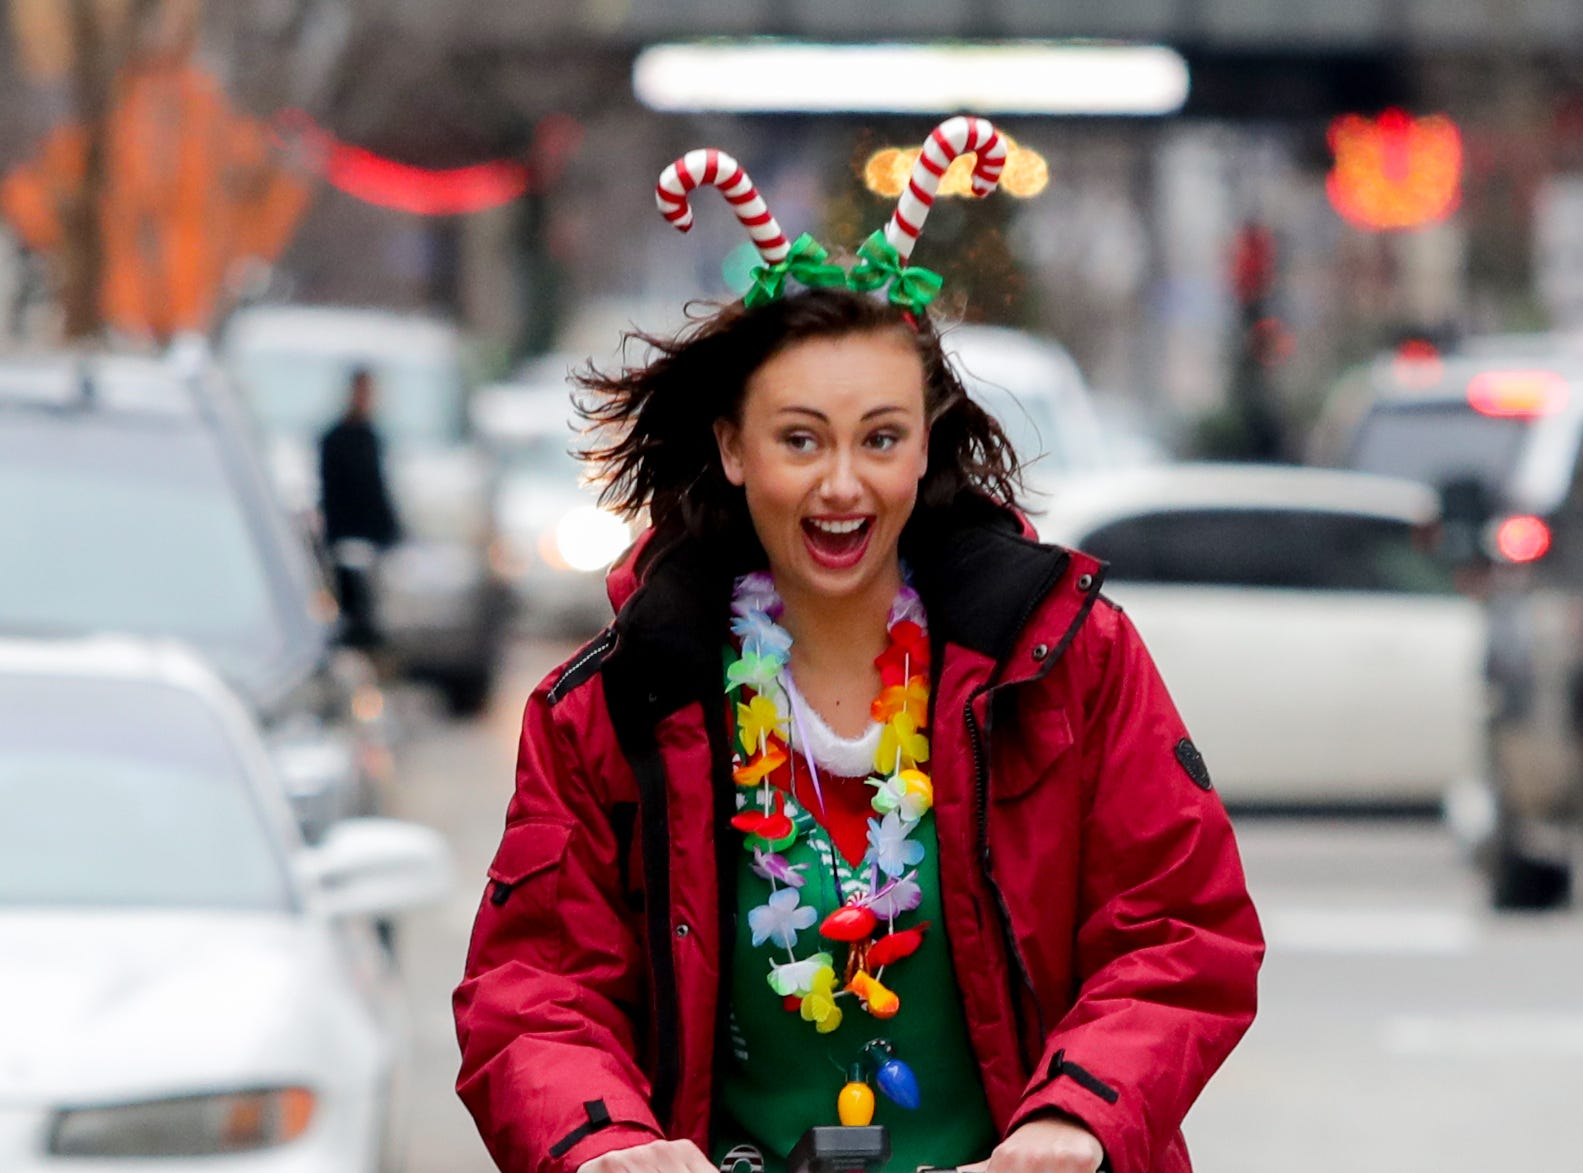 Kelcie Perez uses a Bird to get from one location to another on the SantaCon journey. Dec. 8, 2018